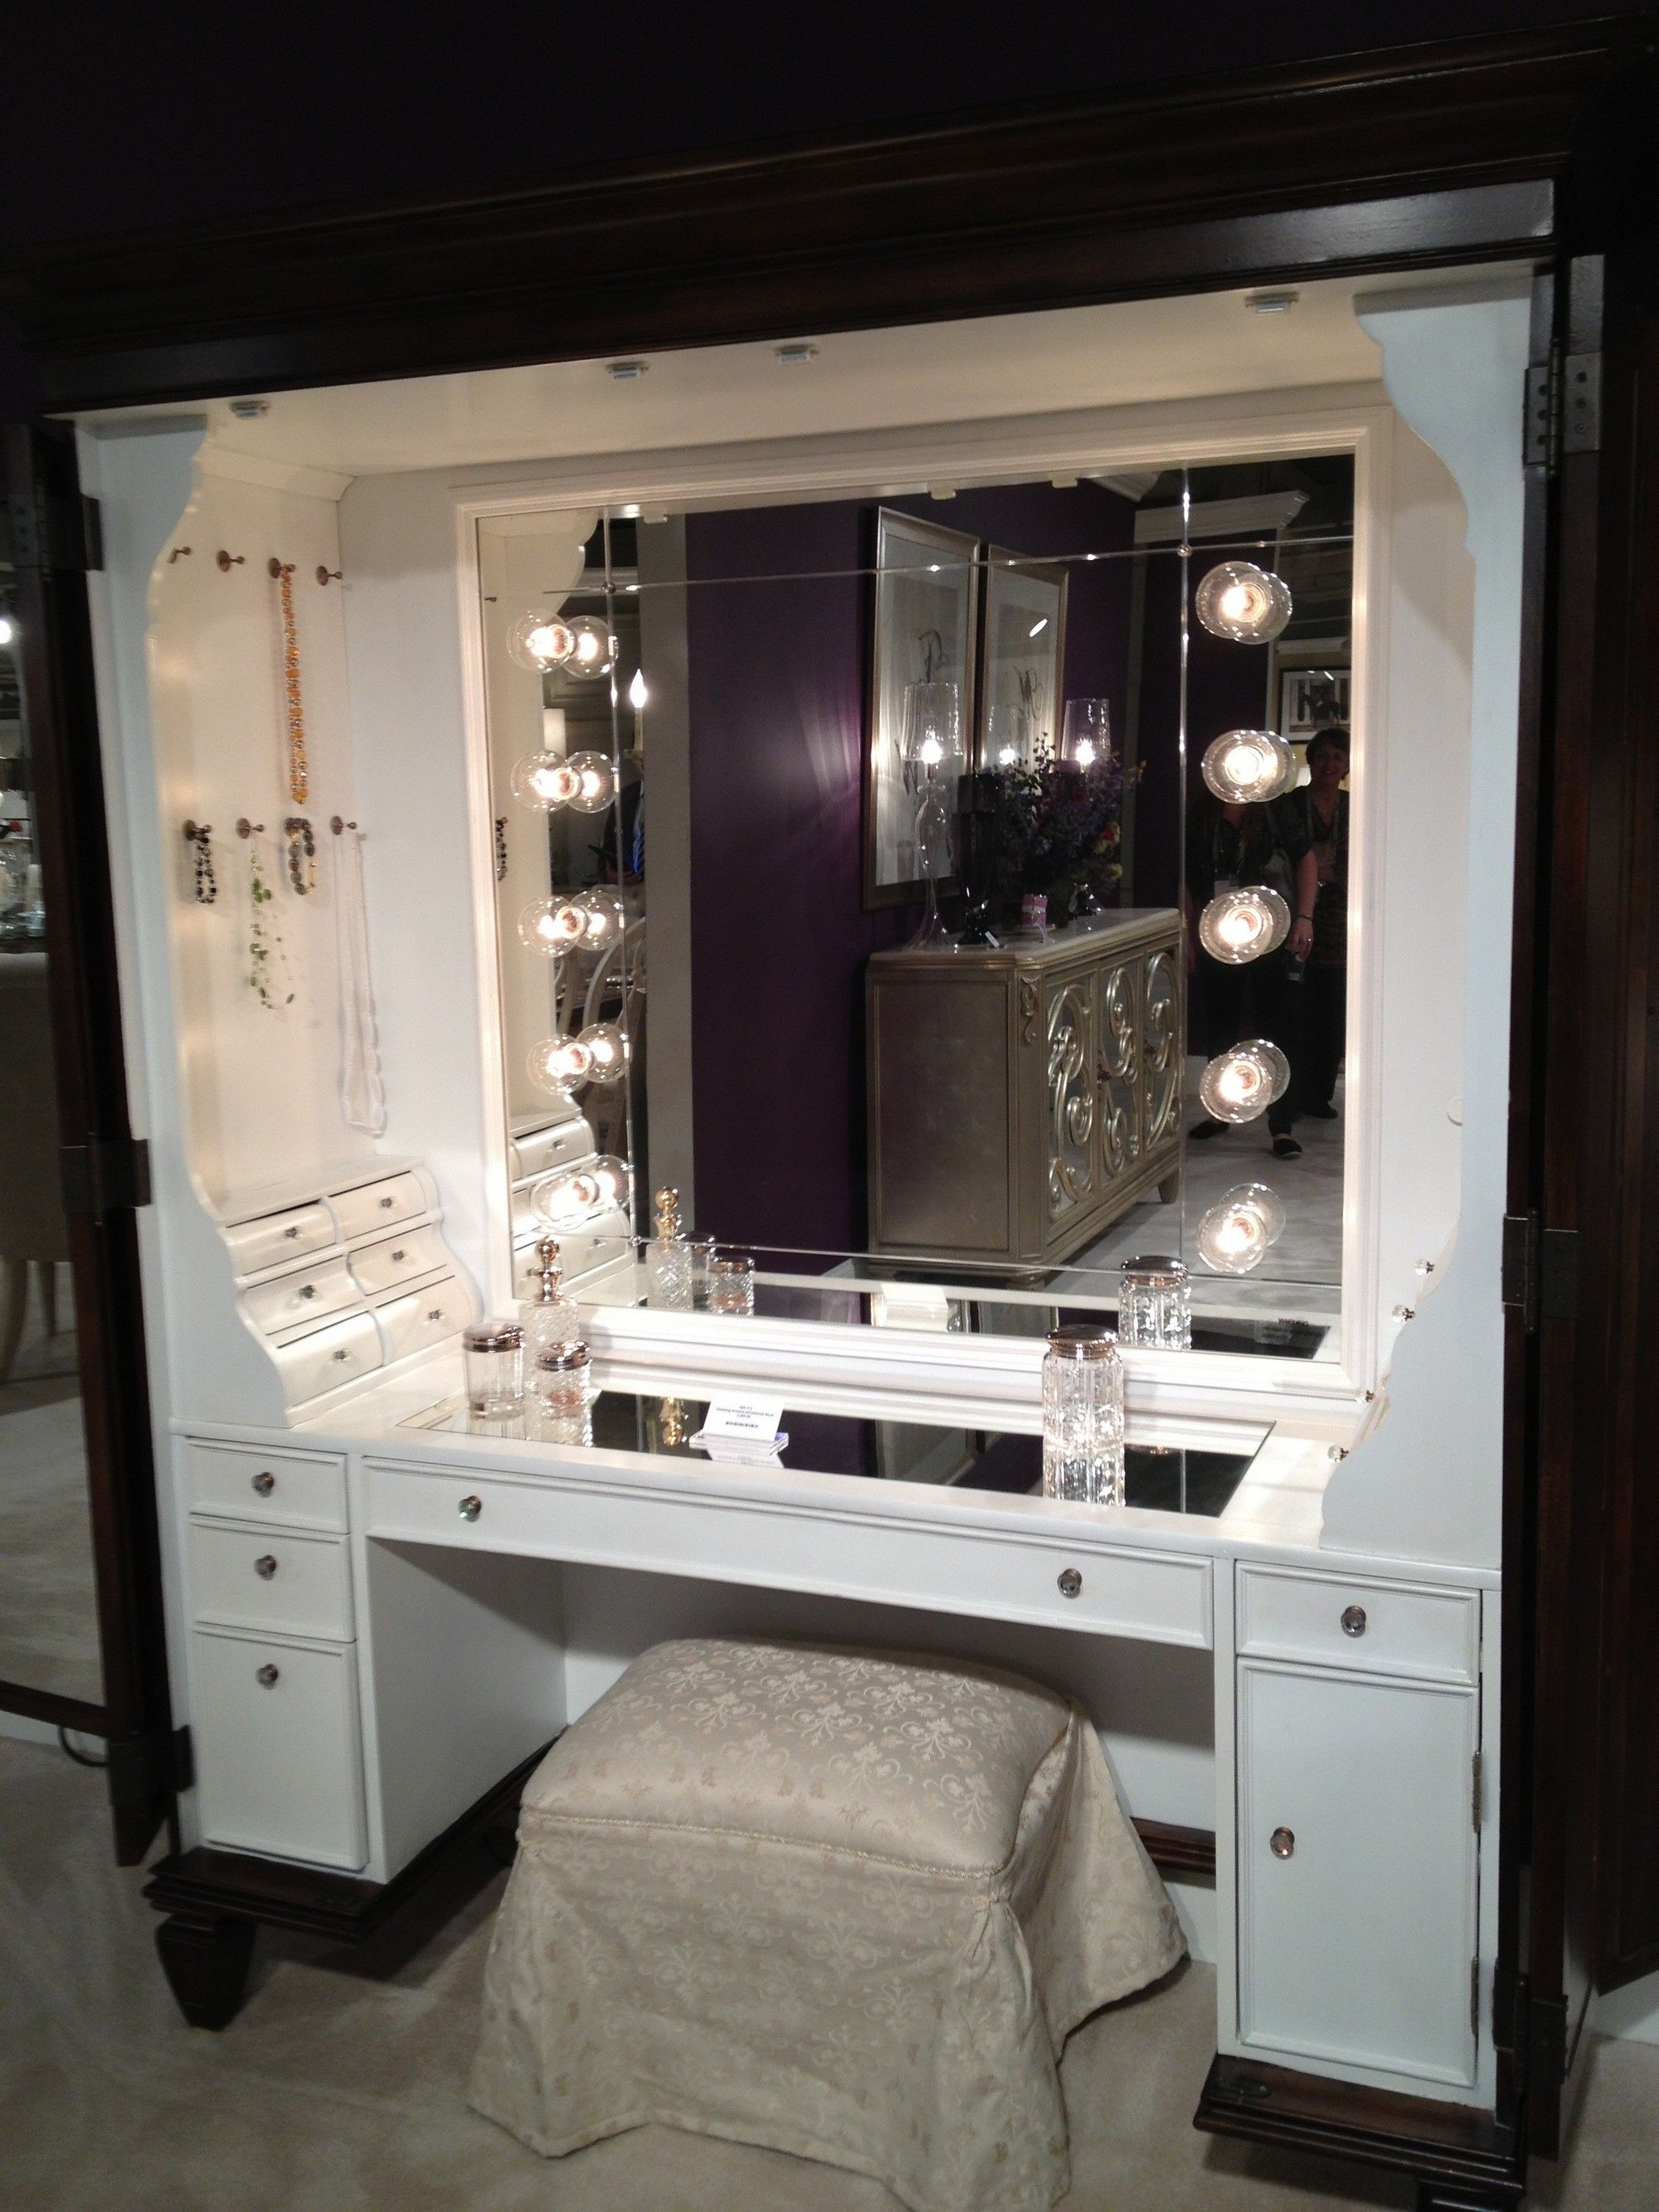 Big Vanity Mirror With Lights Pleasing Furniture Black Makeup Table With Lighted Mirror And Small Fabric Inspiration Design